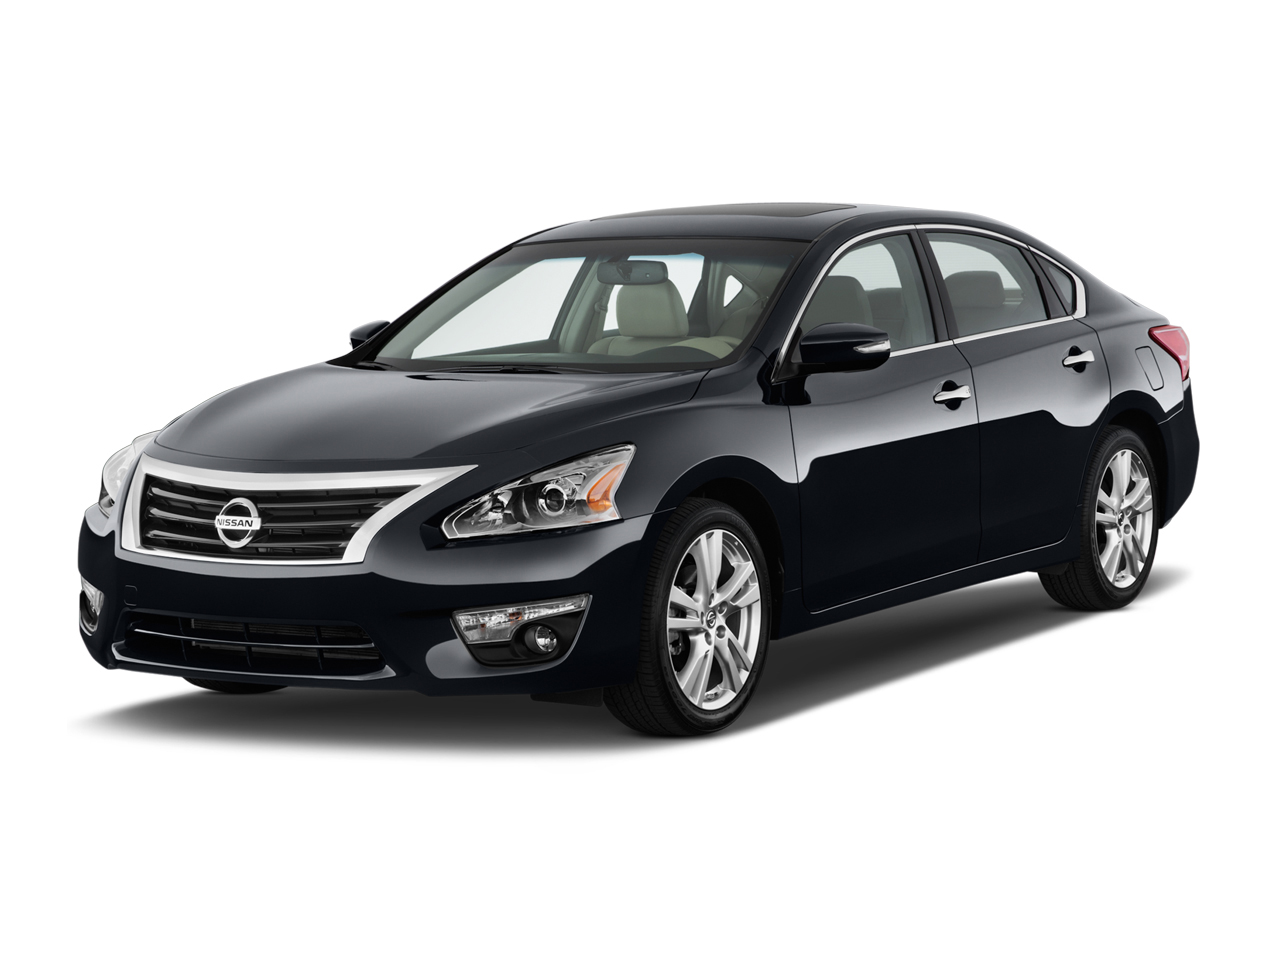 Nissan Altima 2 Door 2014 Autos Post